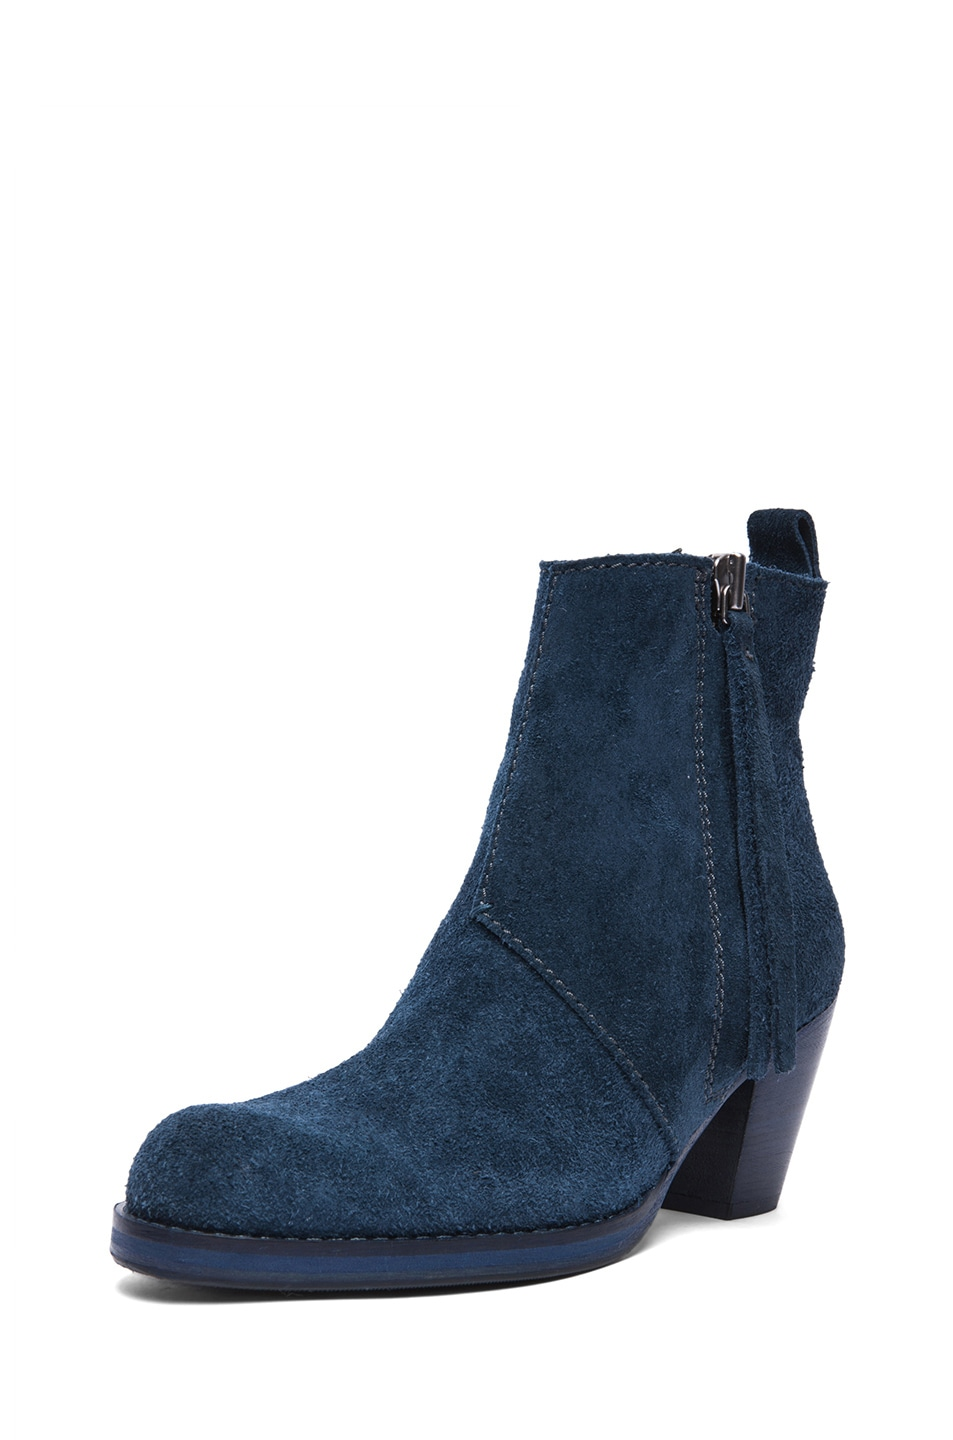 Image 2 of Acne Studios Pistol Suede Booties in Navy